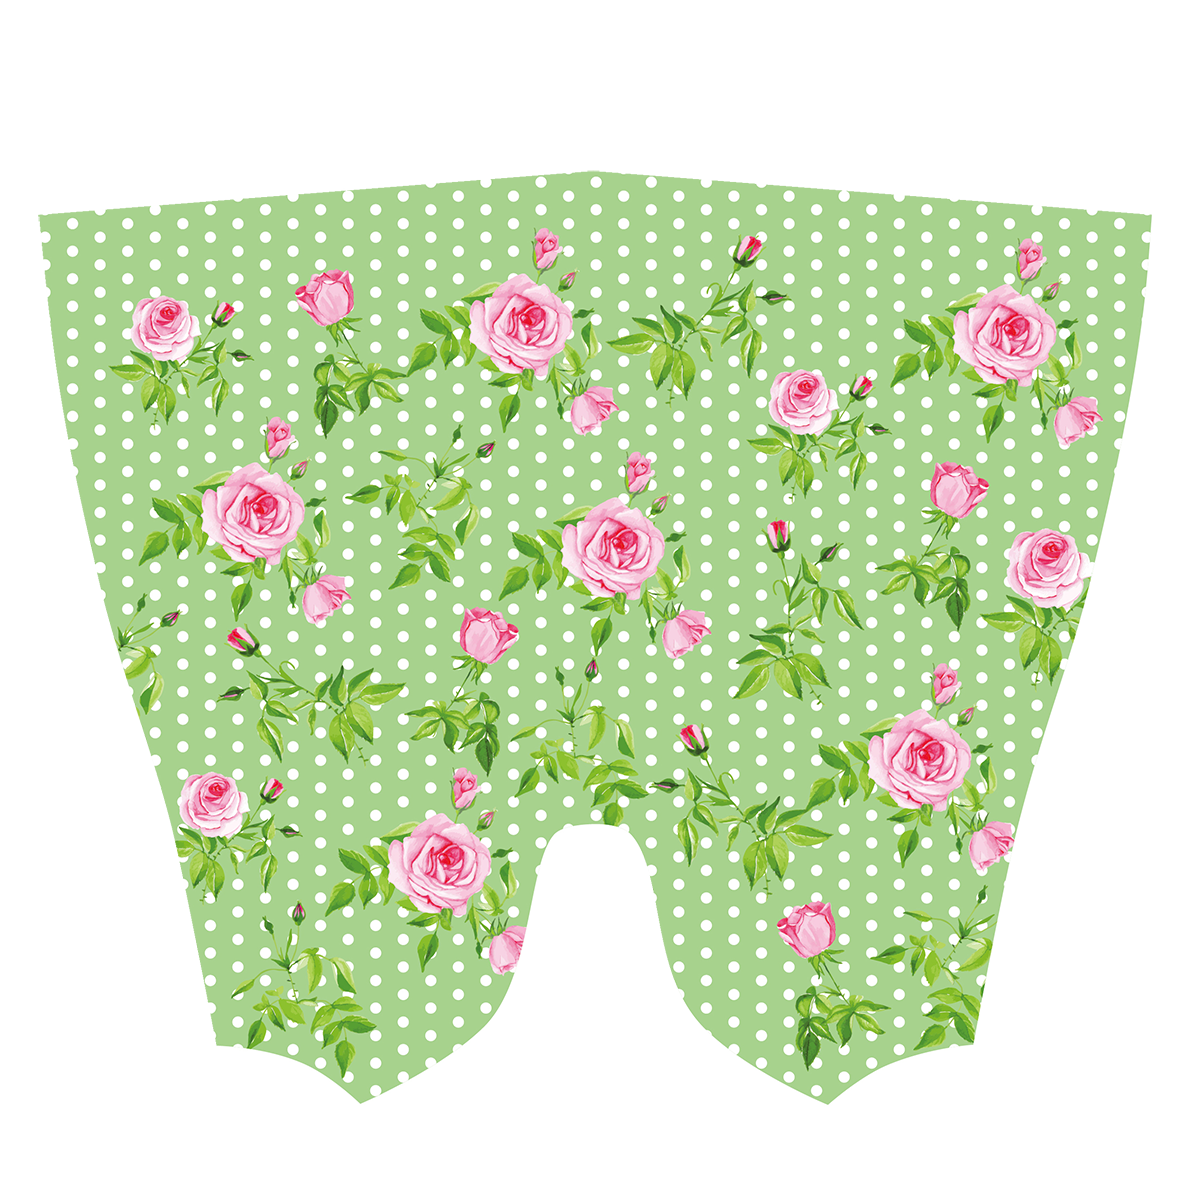 Green Polka Dot Roses